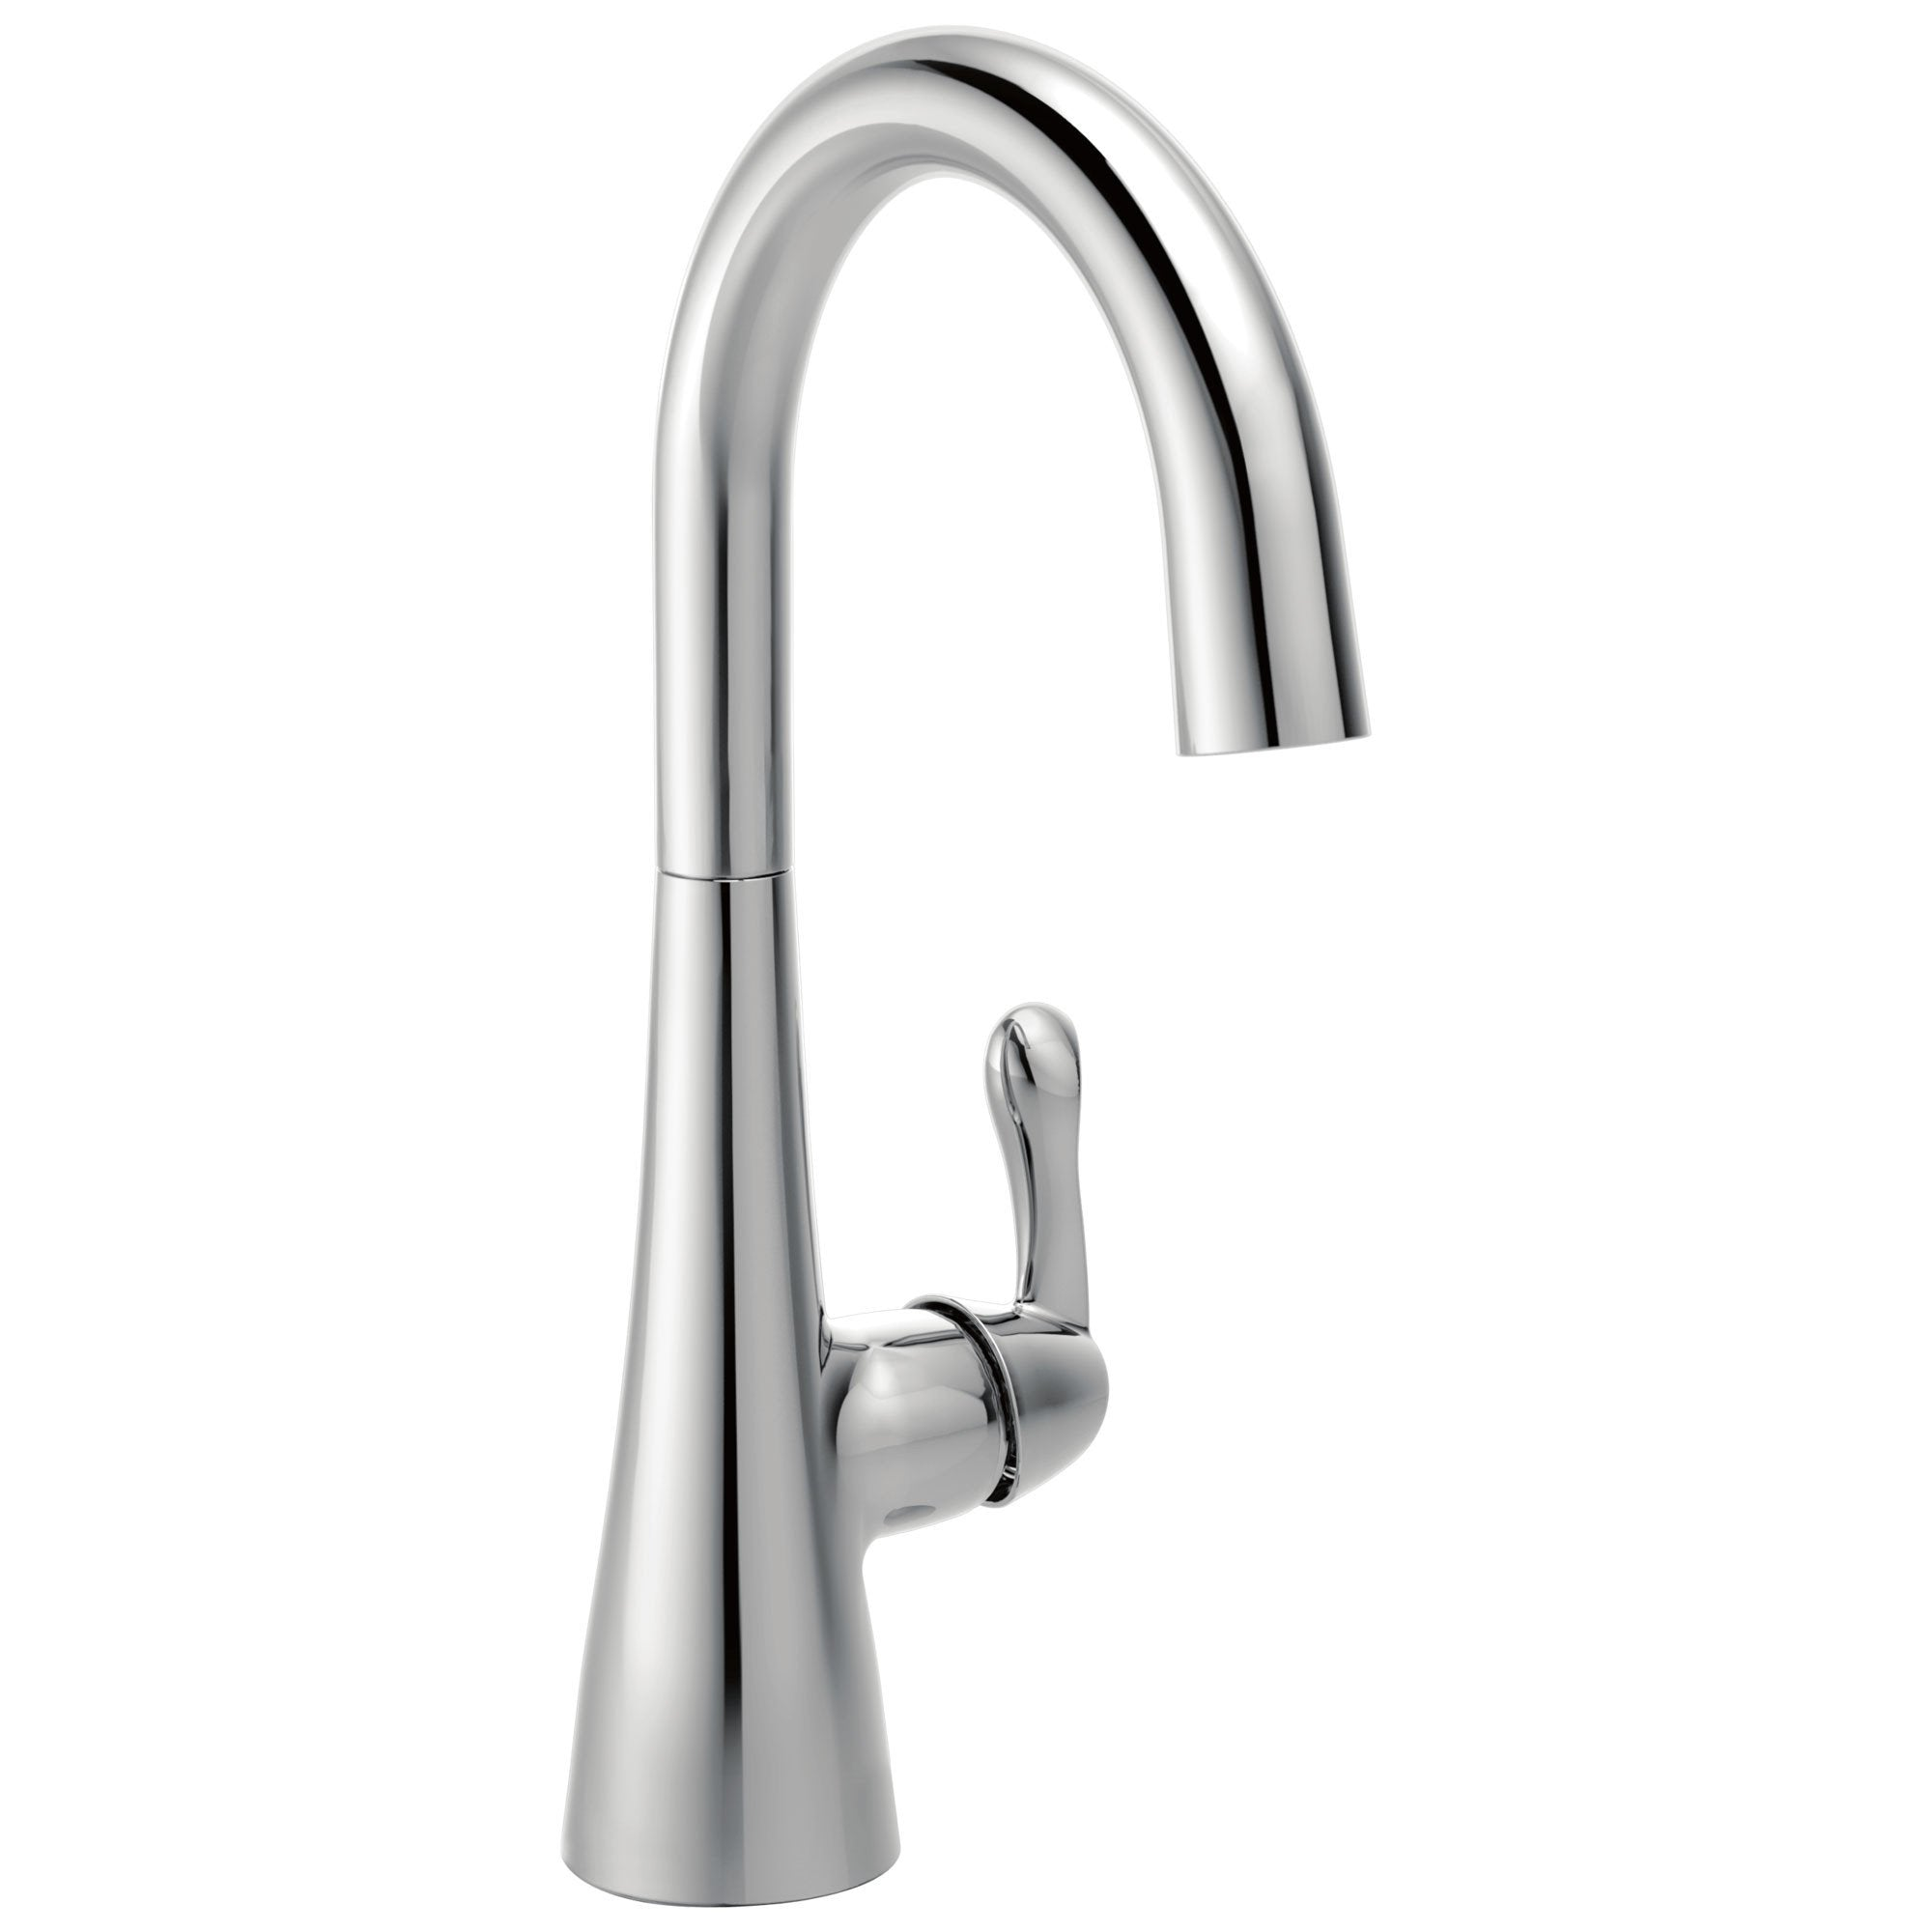 Delta Chrome Finish Single Lever Handle 360-degree Swivel Spout Contemporary Water Efficient Bar Sink Faucet 729155